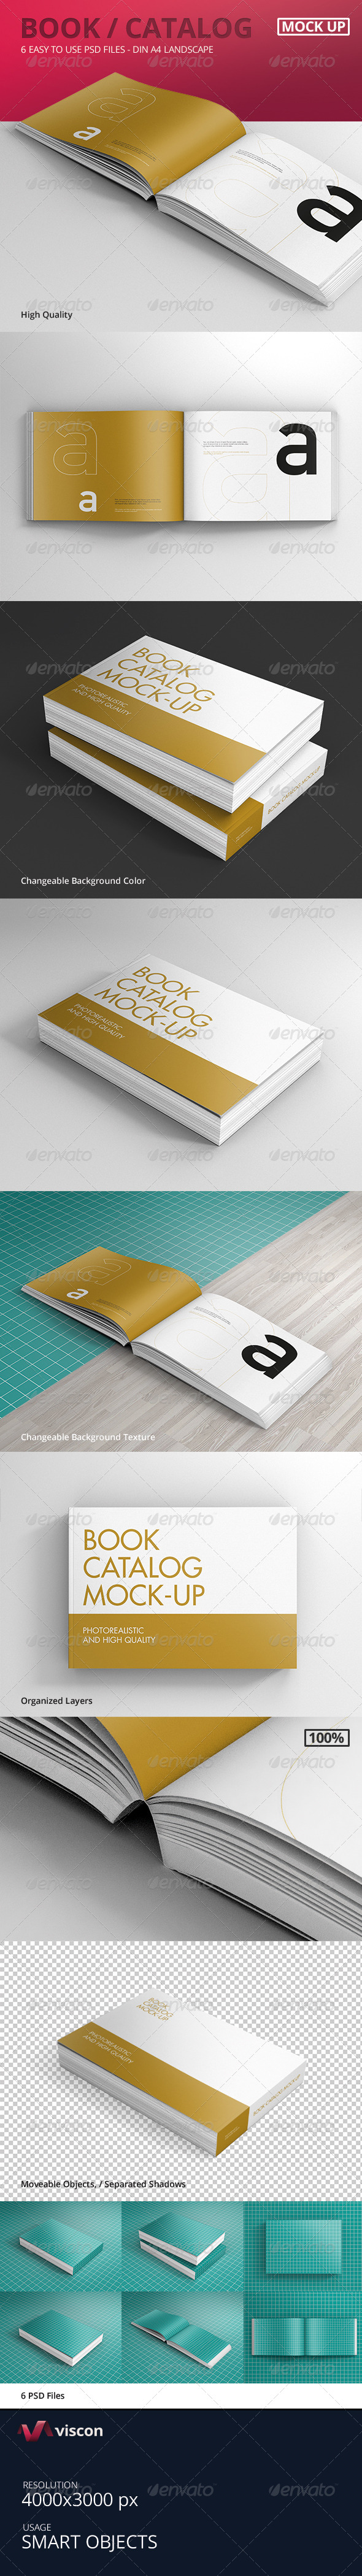 Book / Catalog Mock-Ups Landscape - Books Print